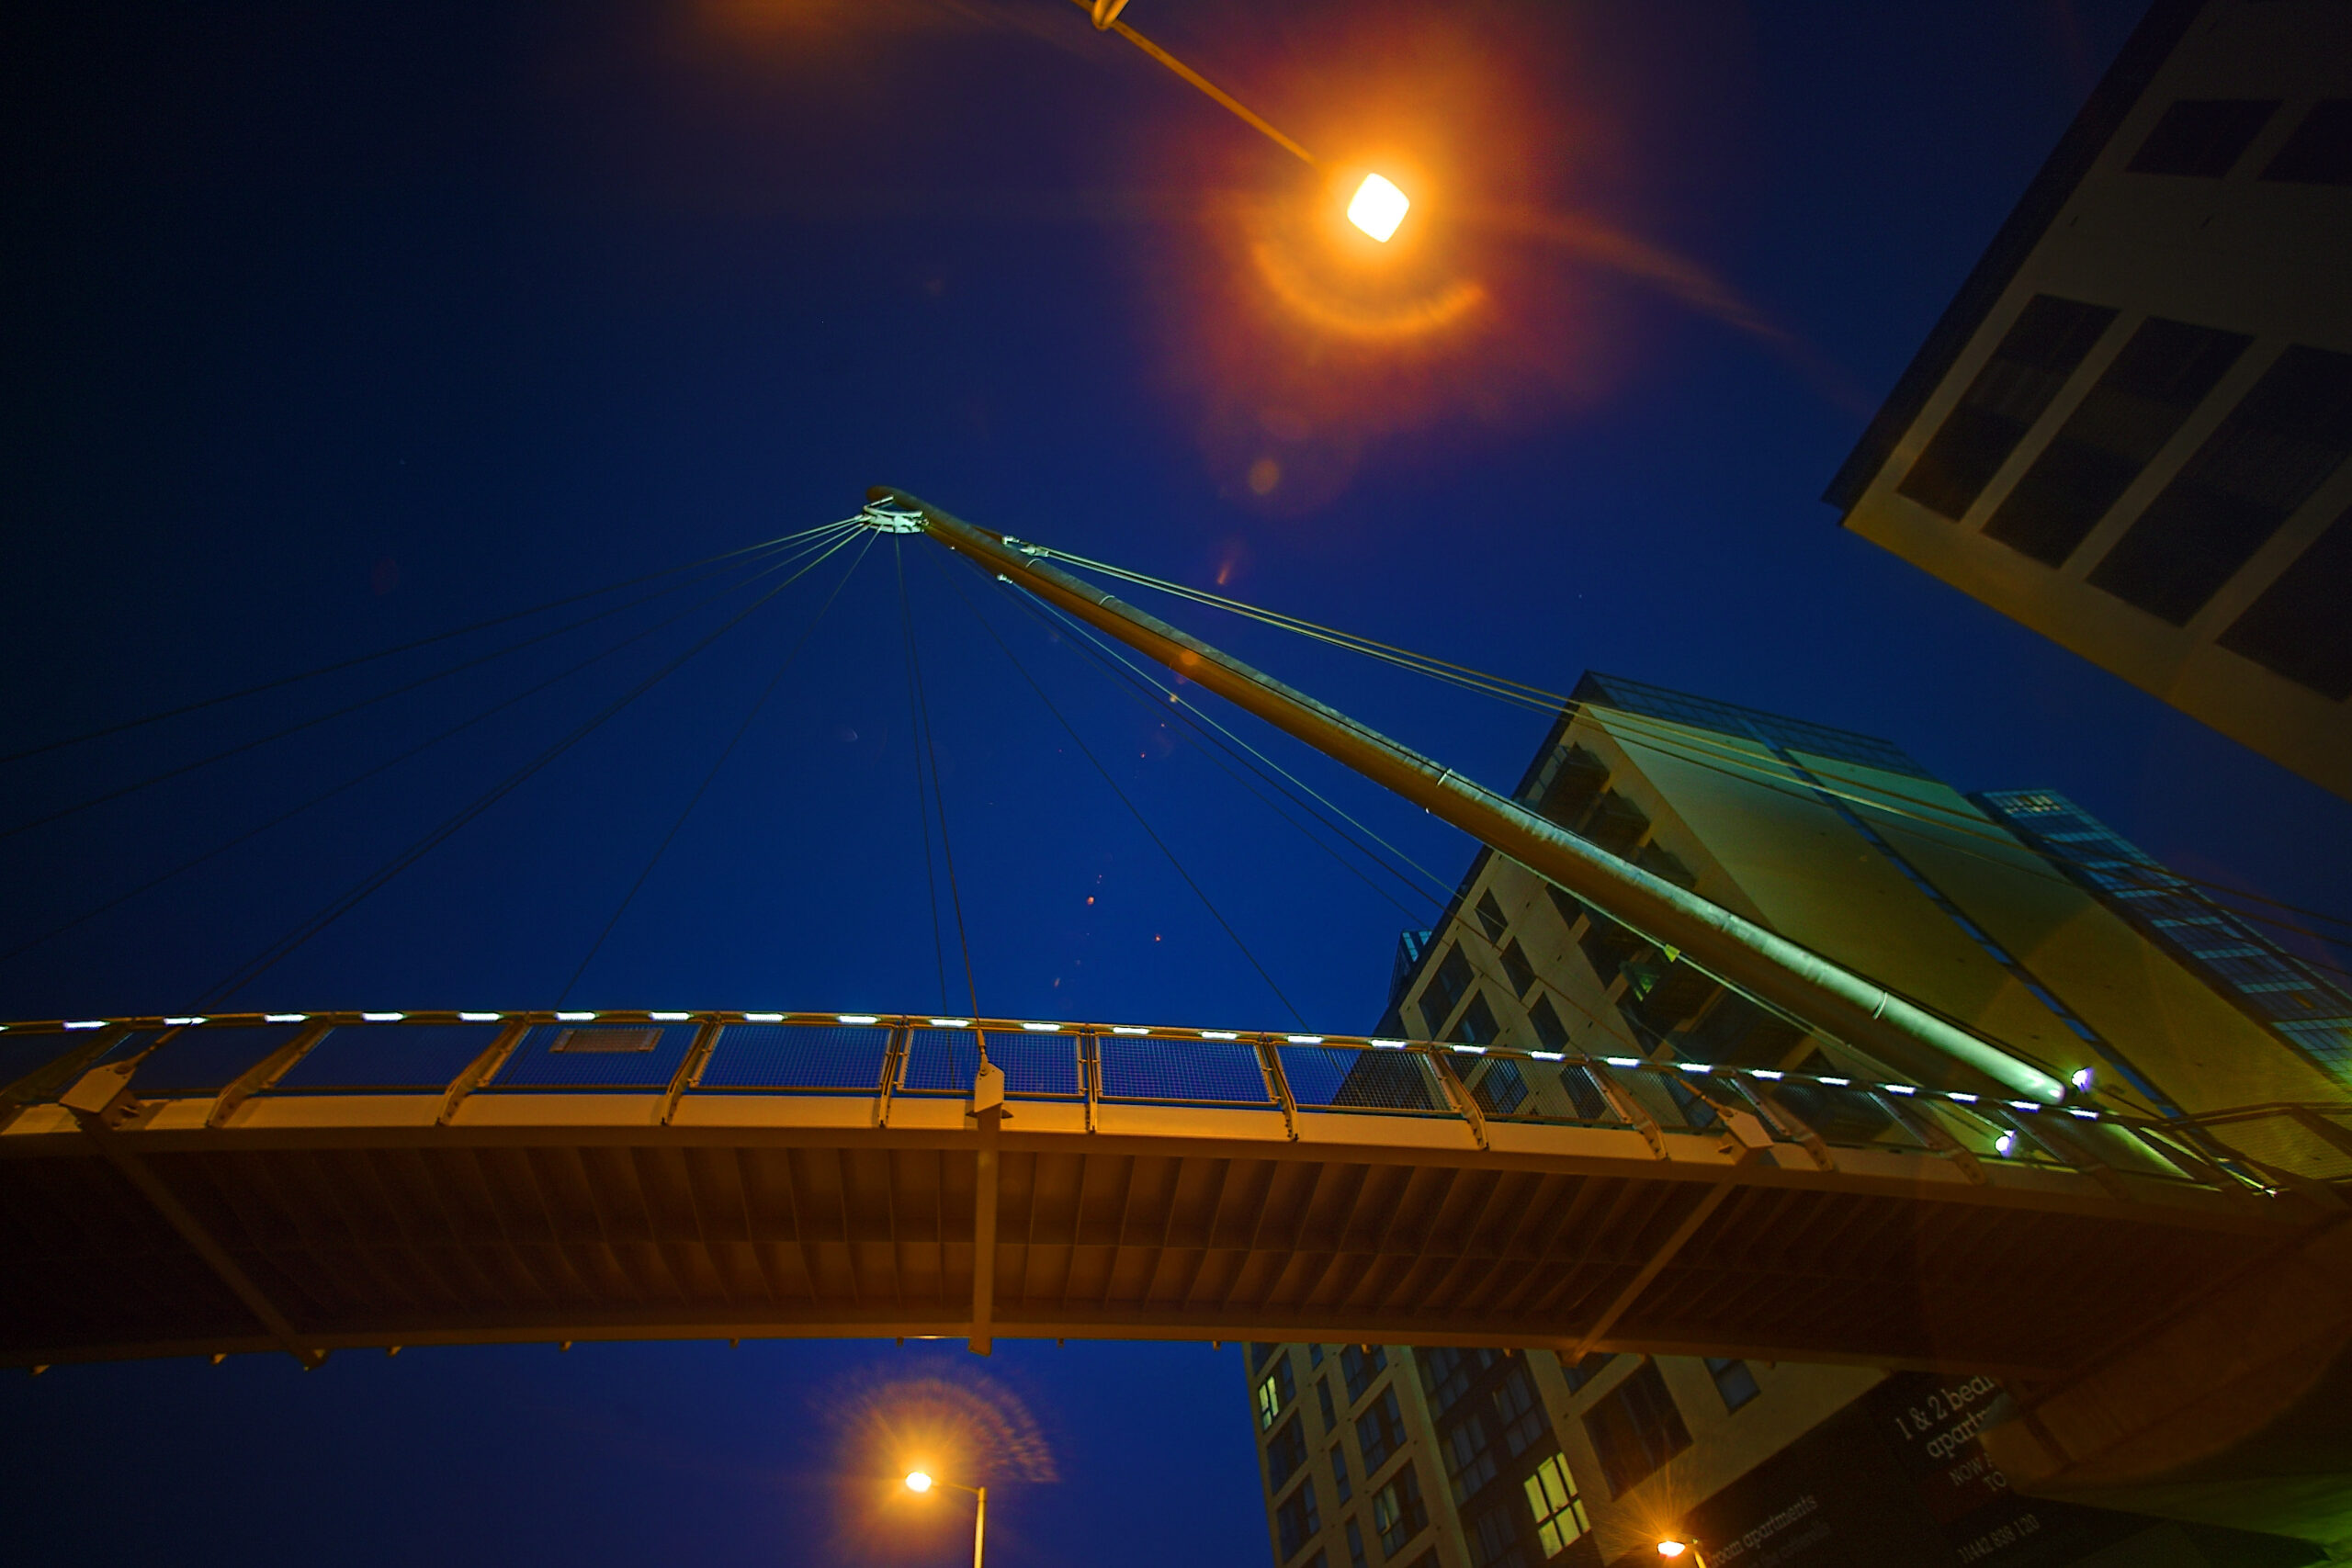 Alfie Morland Bridge - Architectural Lighting for Bridges & Walkways